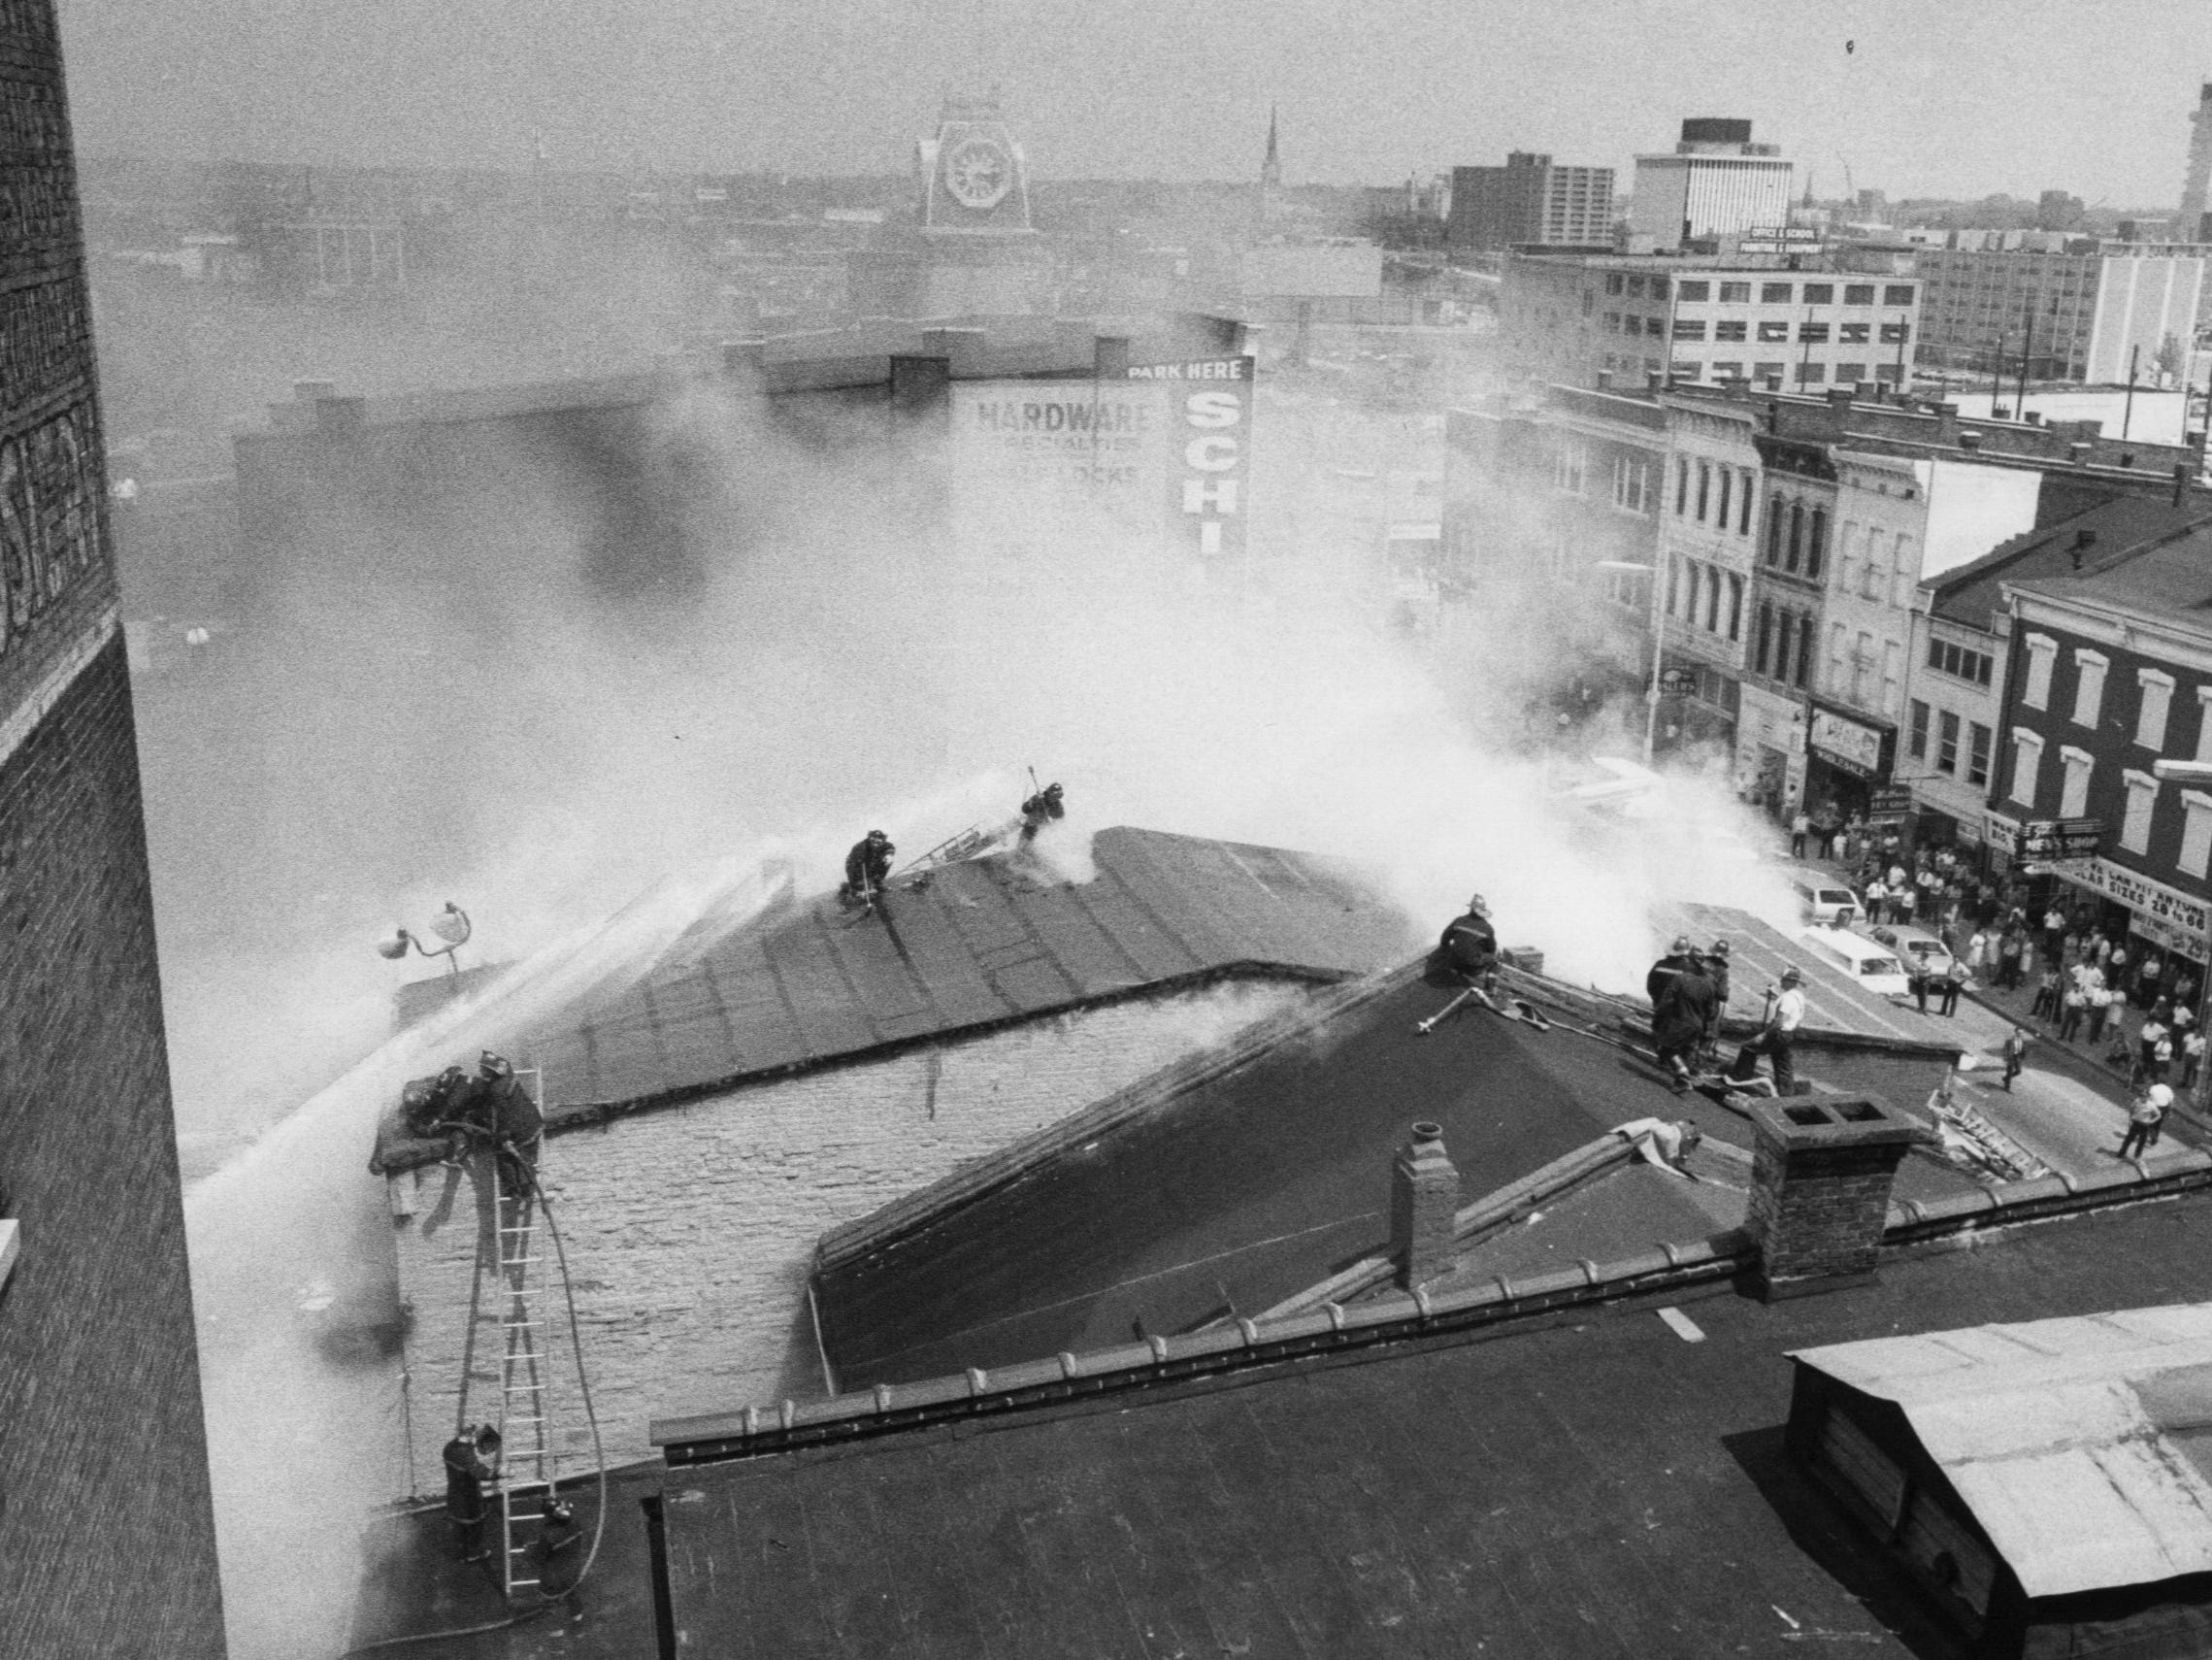 Firemen, shrouded in smoke, battle Bridges-Smith Paint Co. fire from the roof. 